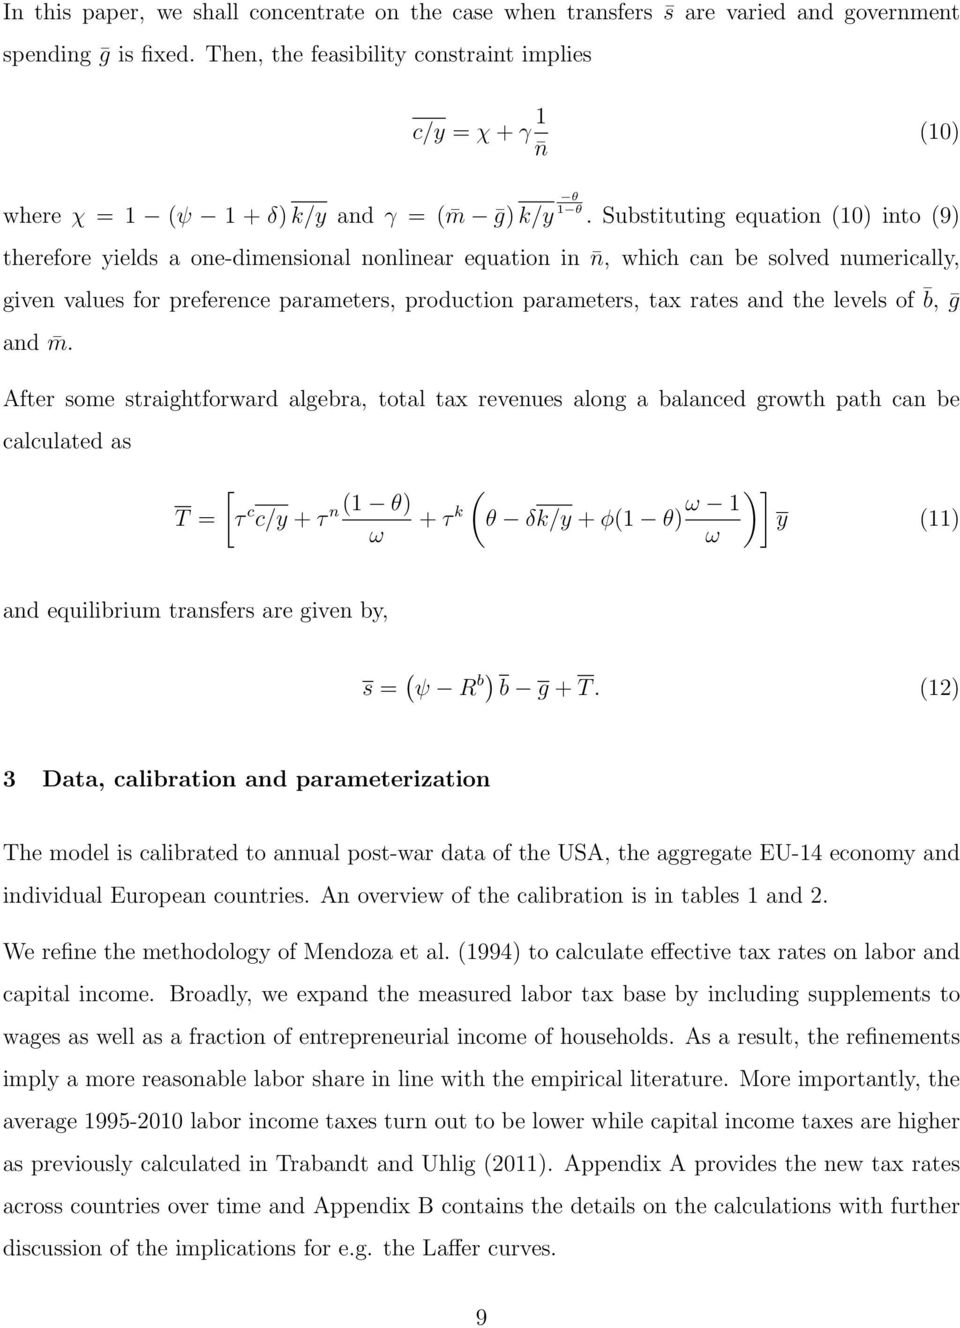 Substituting equation (10) into (9) therefore yields a one-dimensional nonlinear equation in n, which can be solved numerically, given values for preference parameters, production parameters, tax